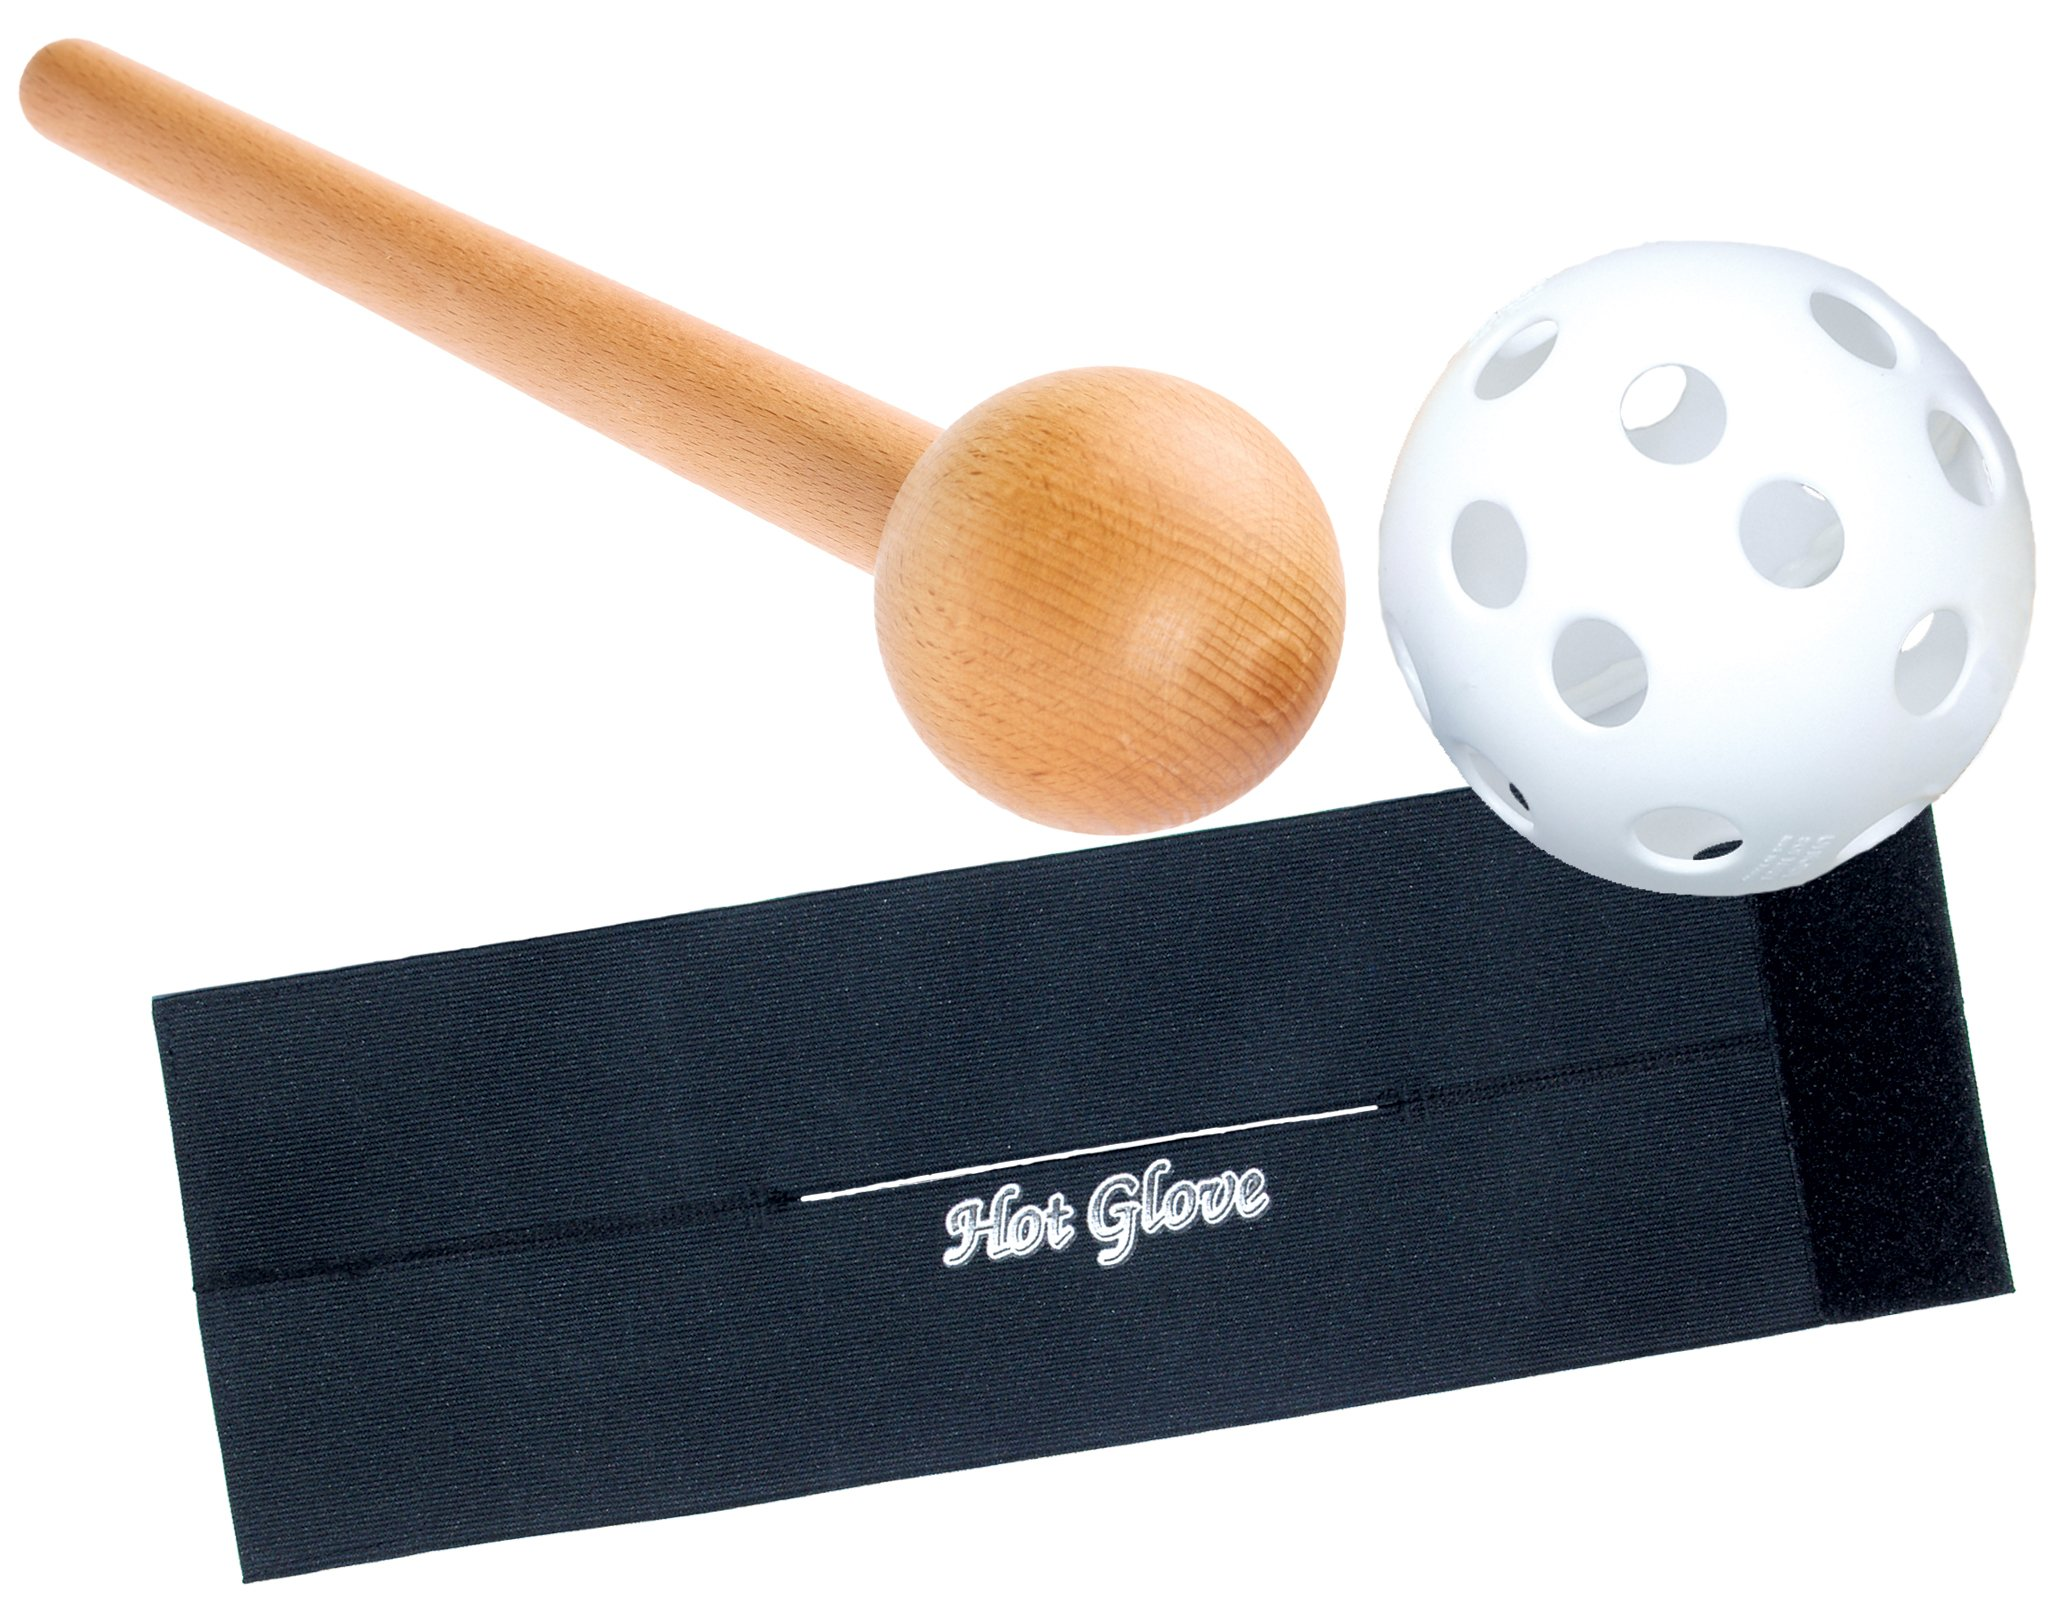 Hot Glove Mallet & Glove Wrap Bundle Break-in Kit by Hot Glove